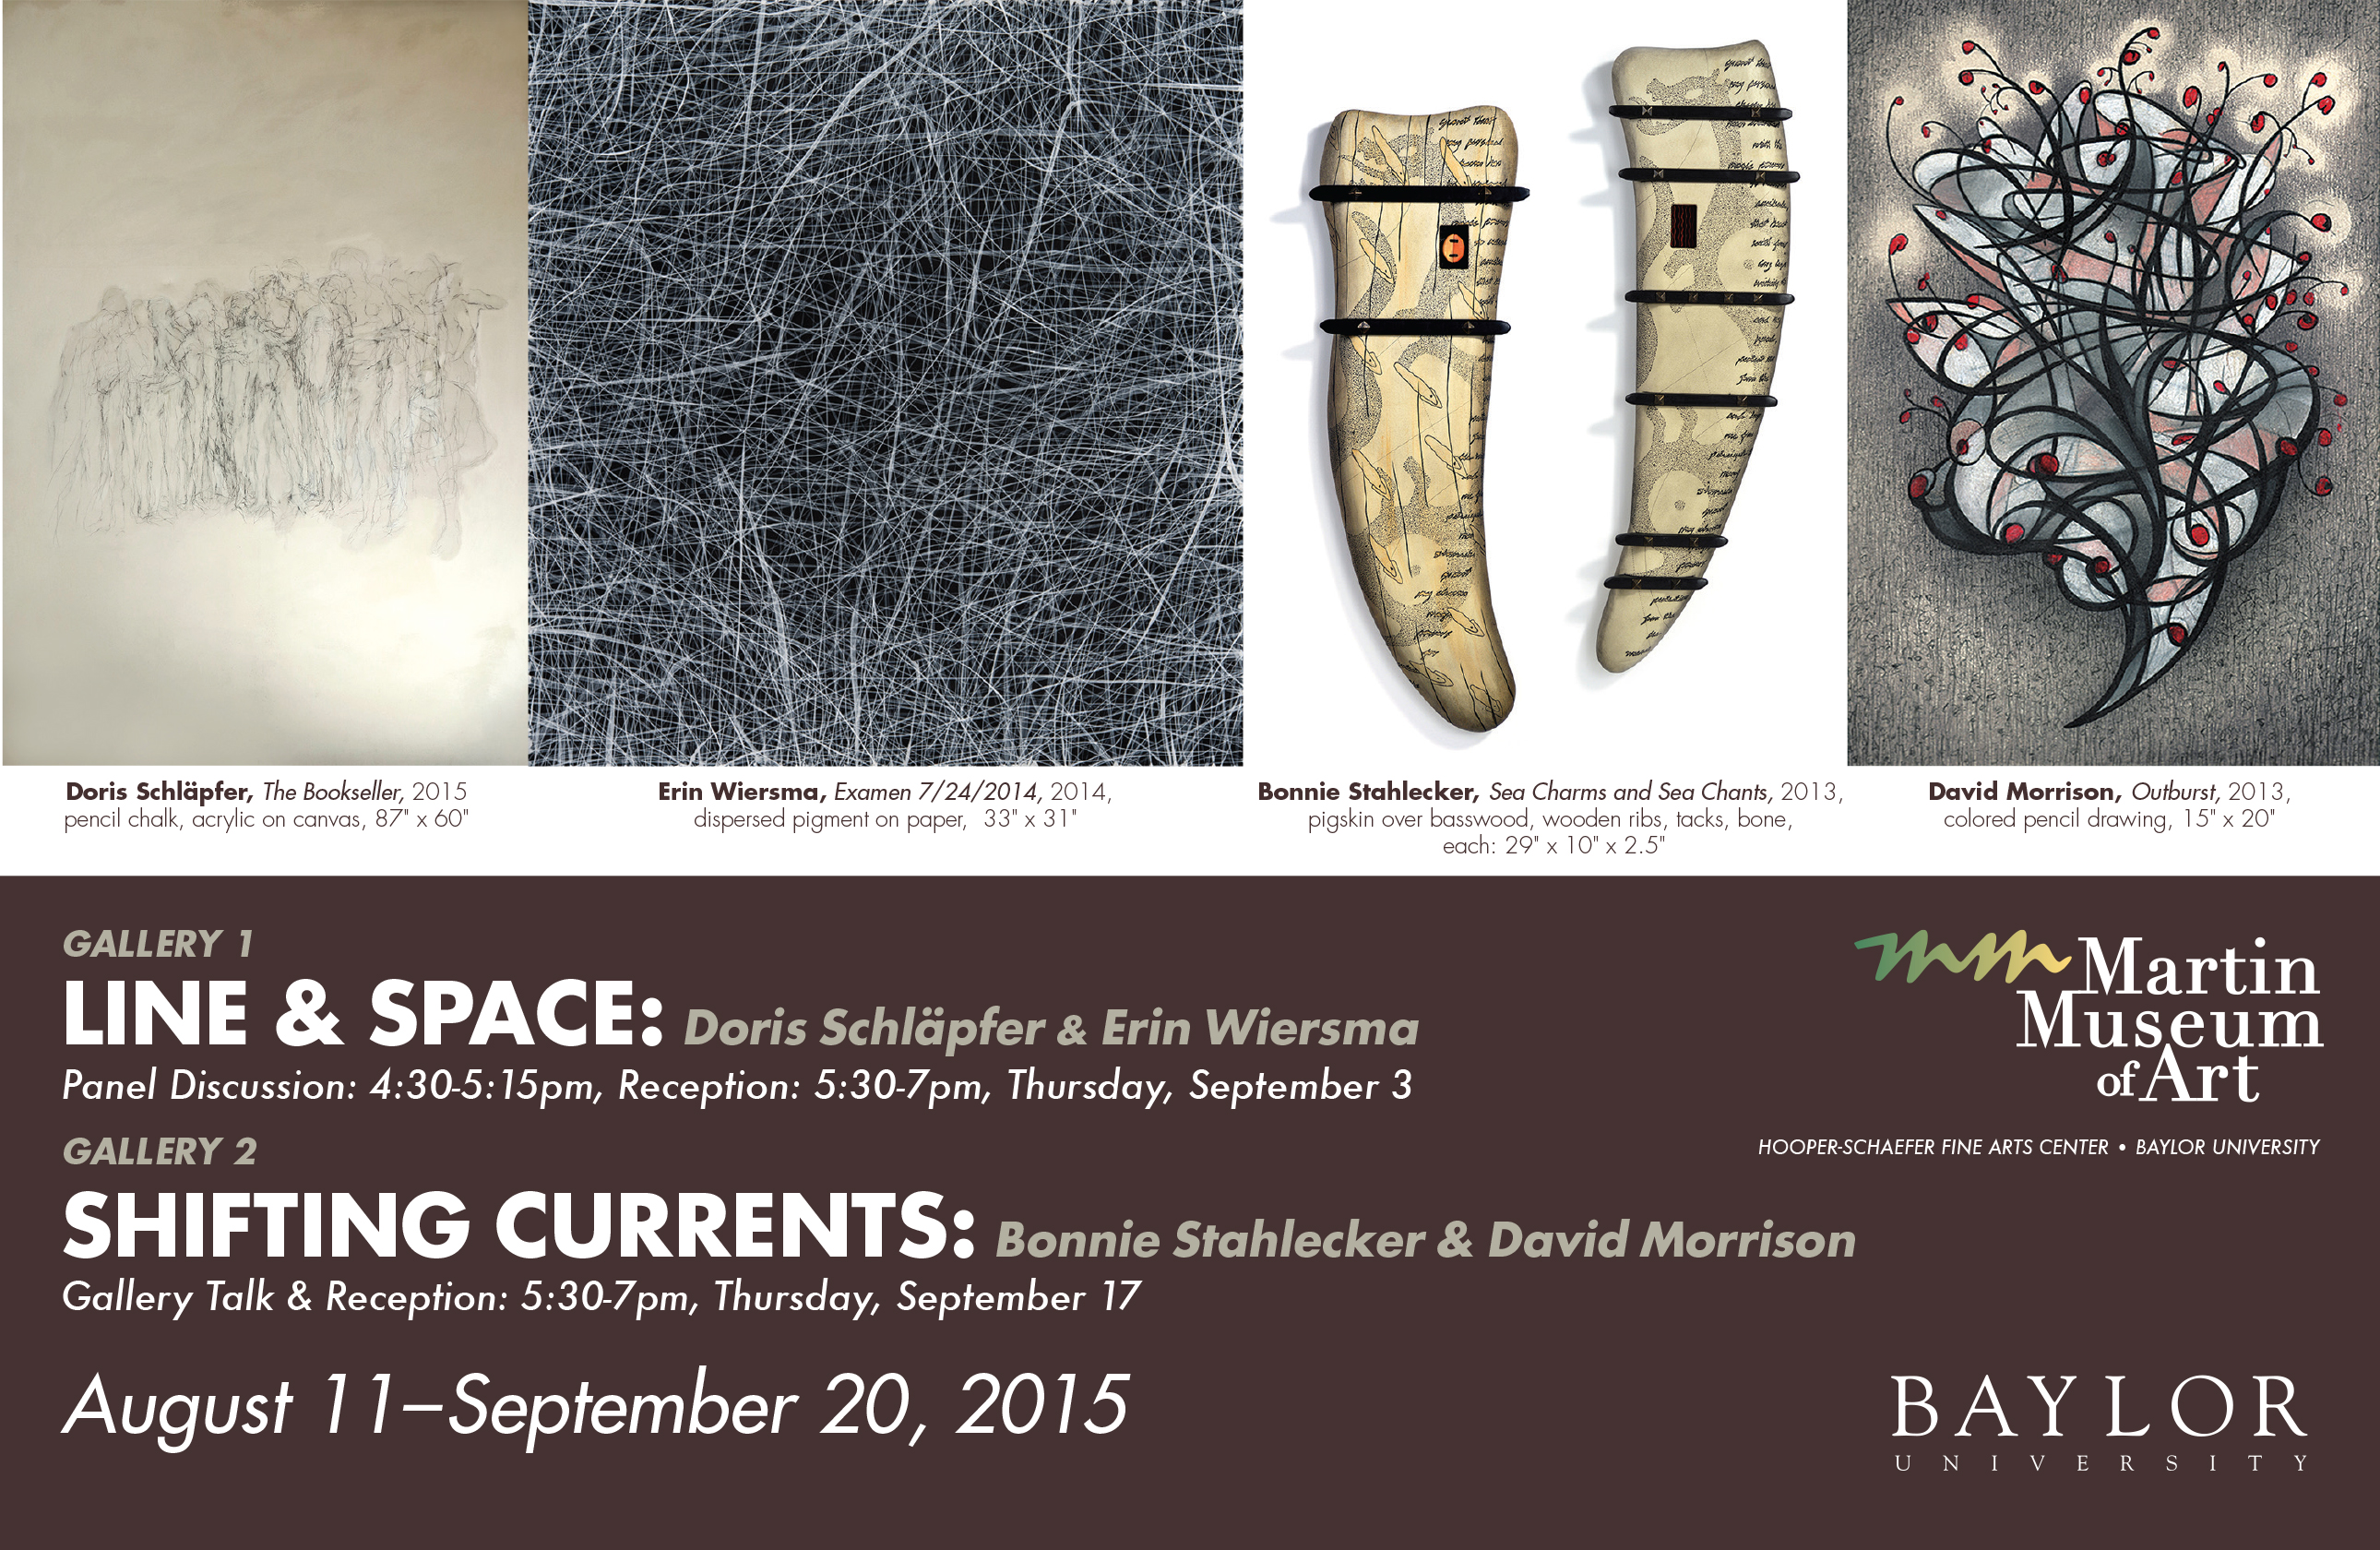 Line & Space and Shifting Currents Postcard, Fall 2015